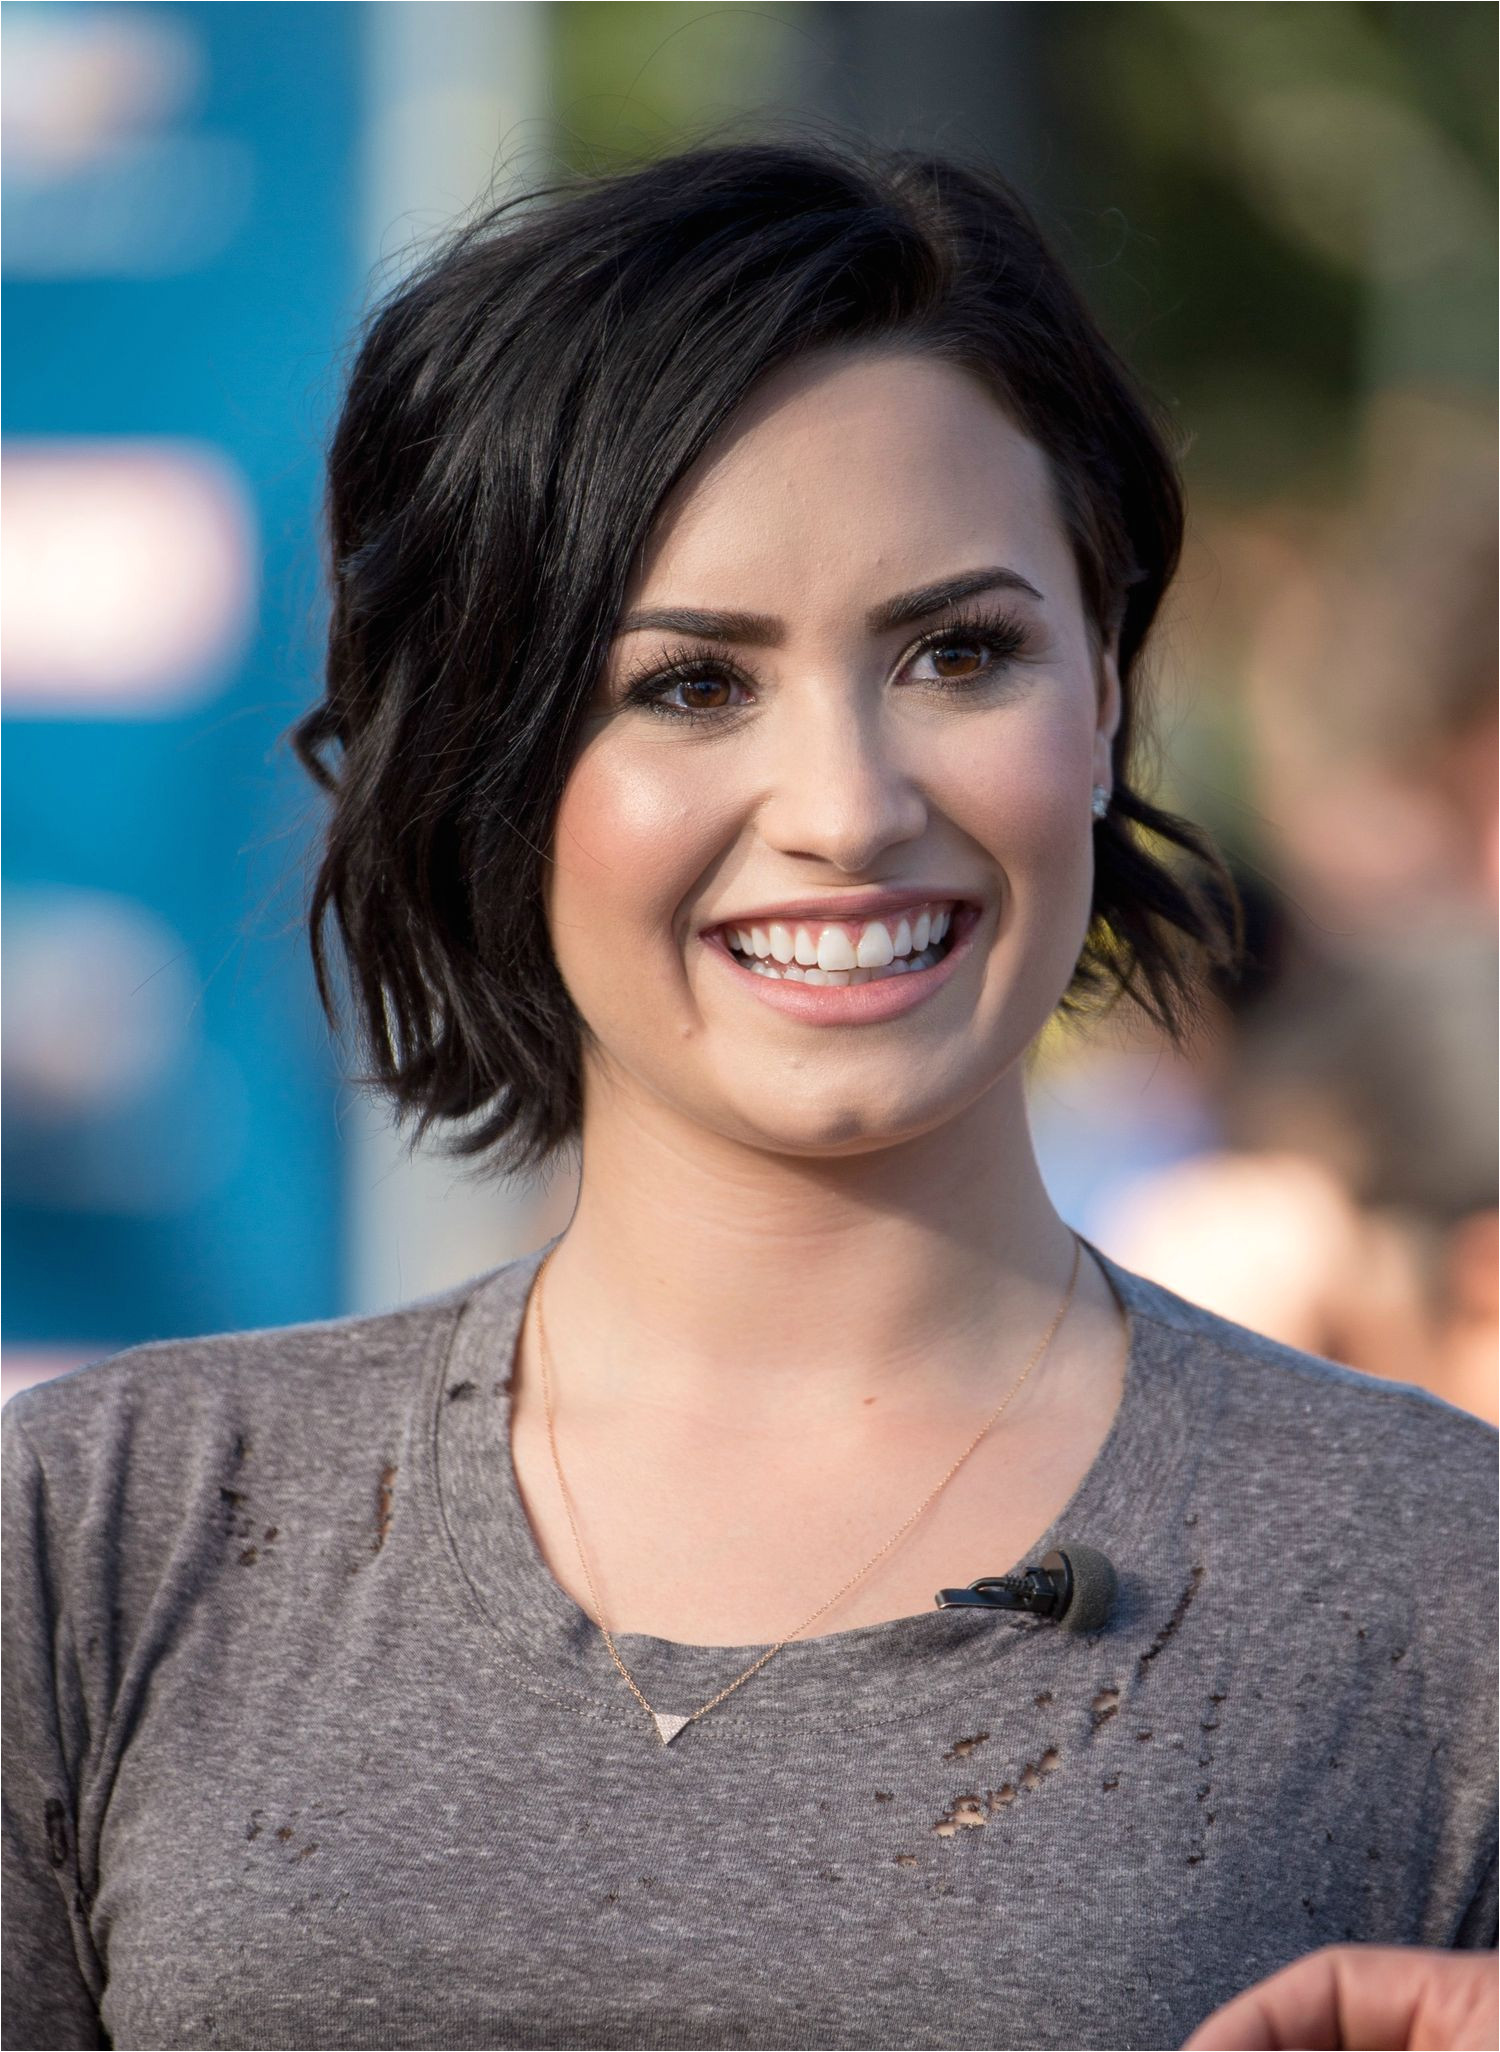 Bob Hairstyles Demi Lovato Demi Lovato S Haircut is Crazy Cute Take A Look From Every Angle